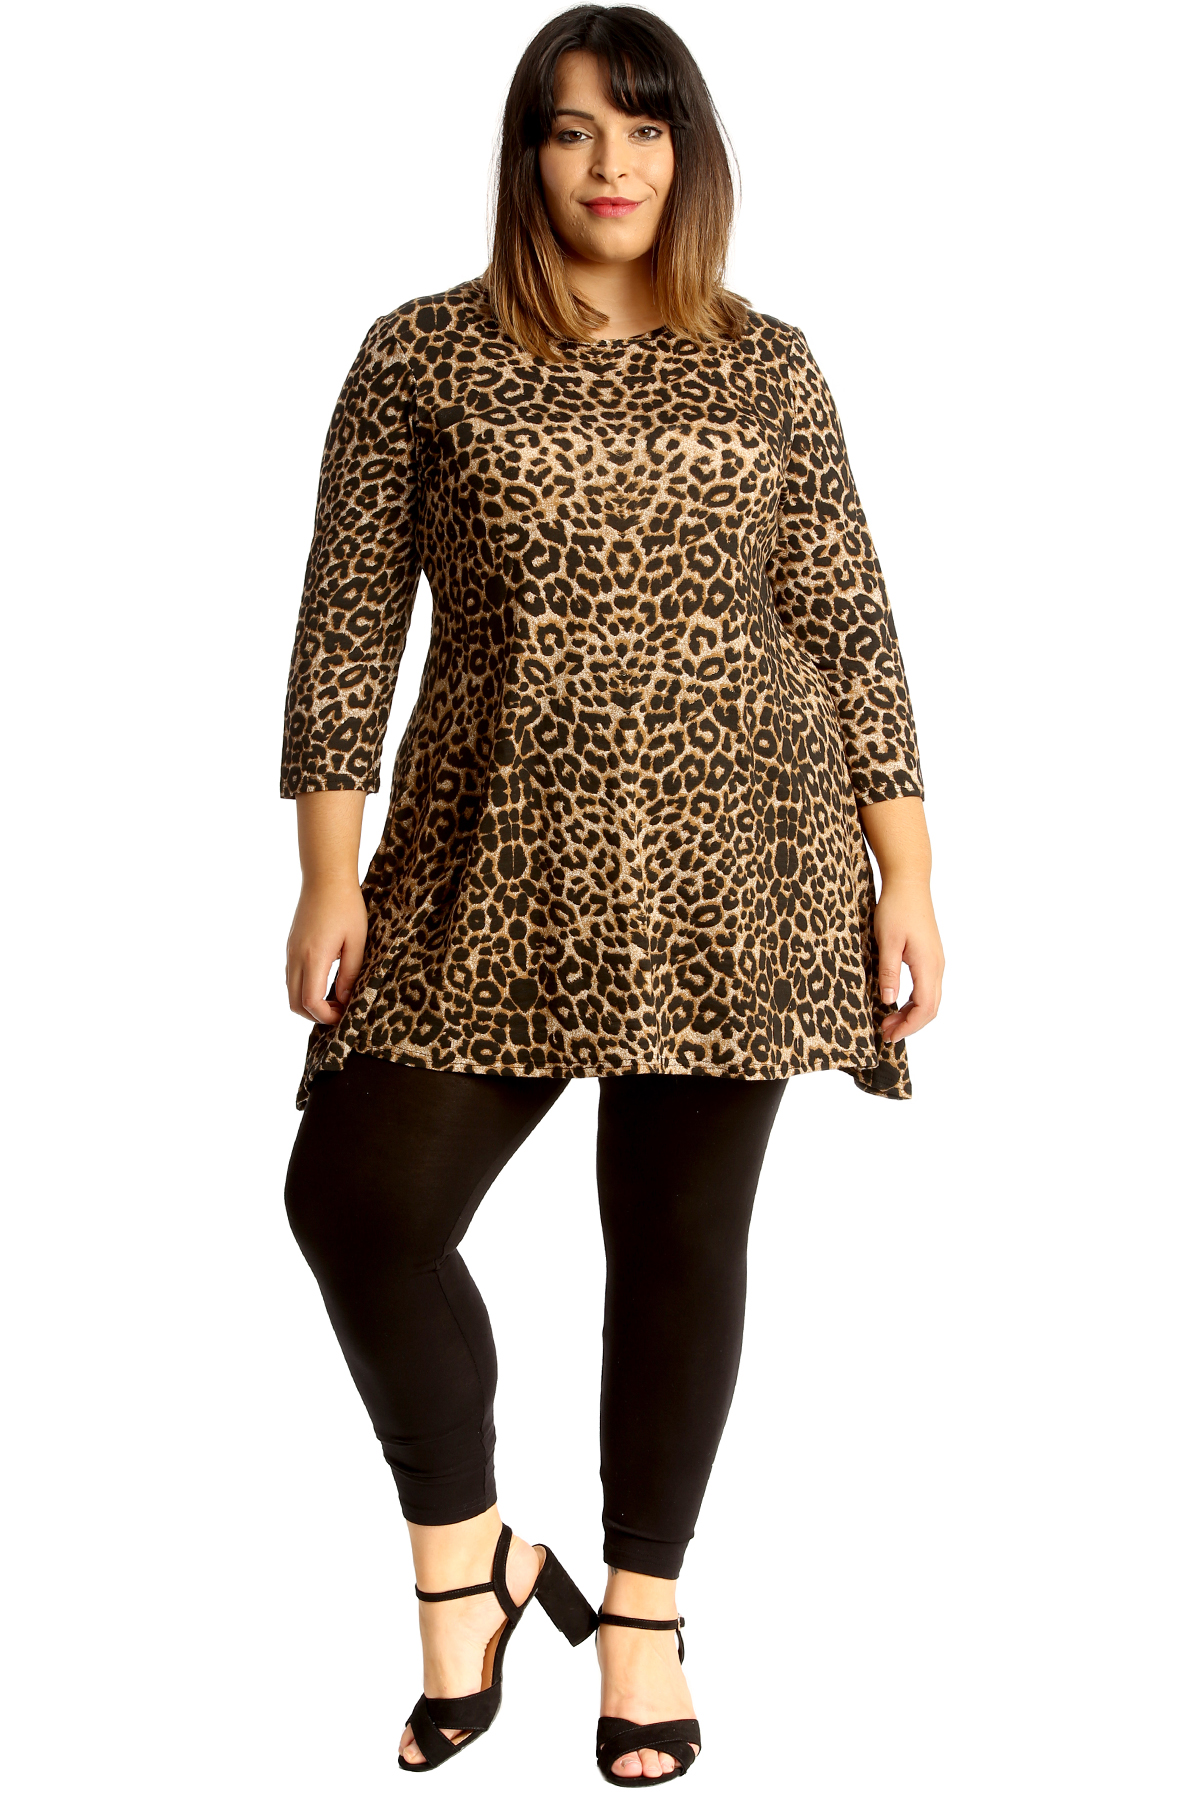 681ab736fa5 New Womens Plus Size Top Ladies Animal Leopard Print Tunic Swing ...